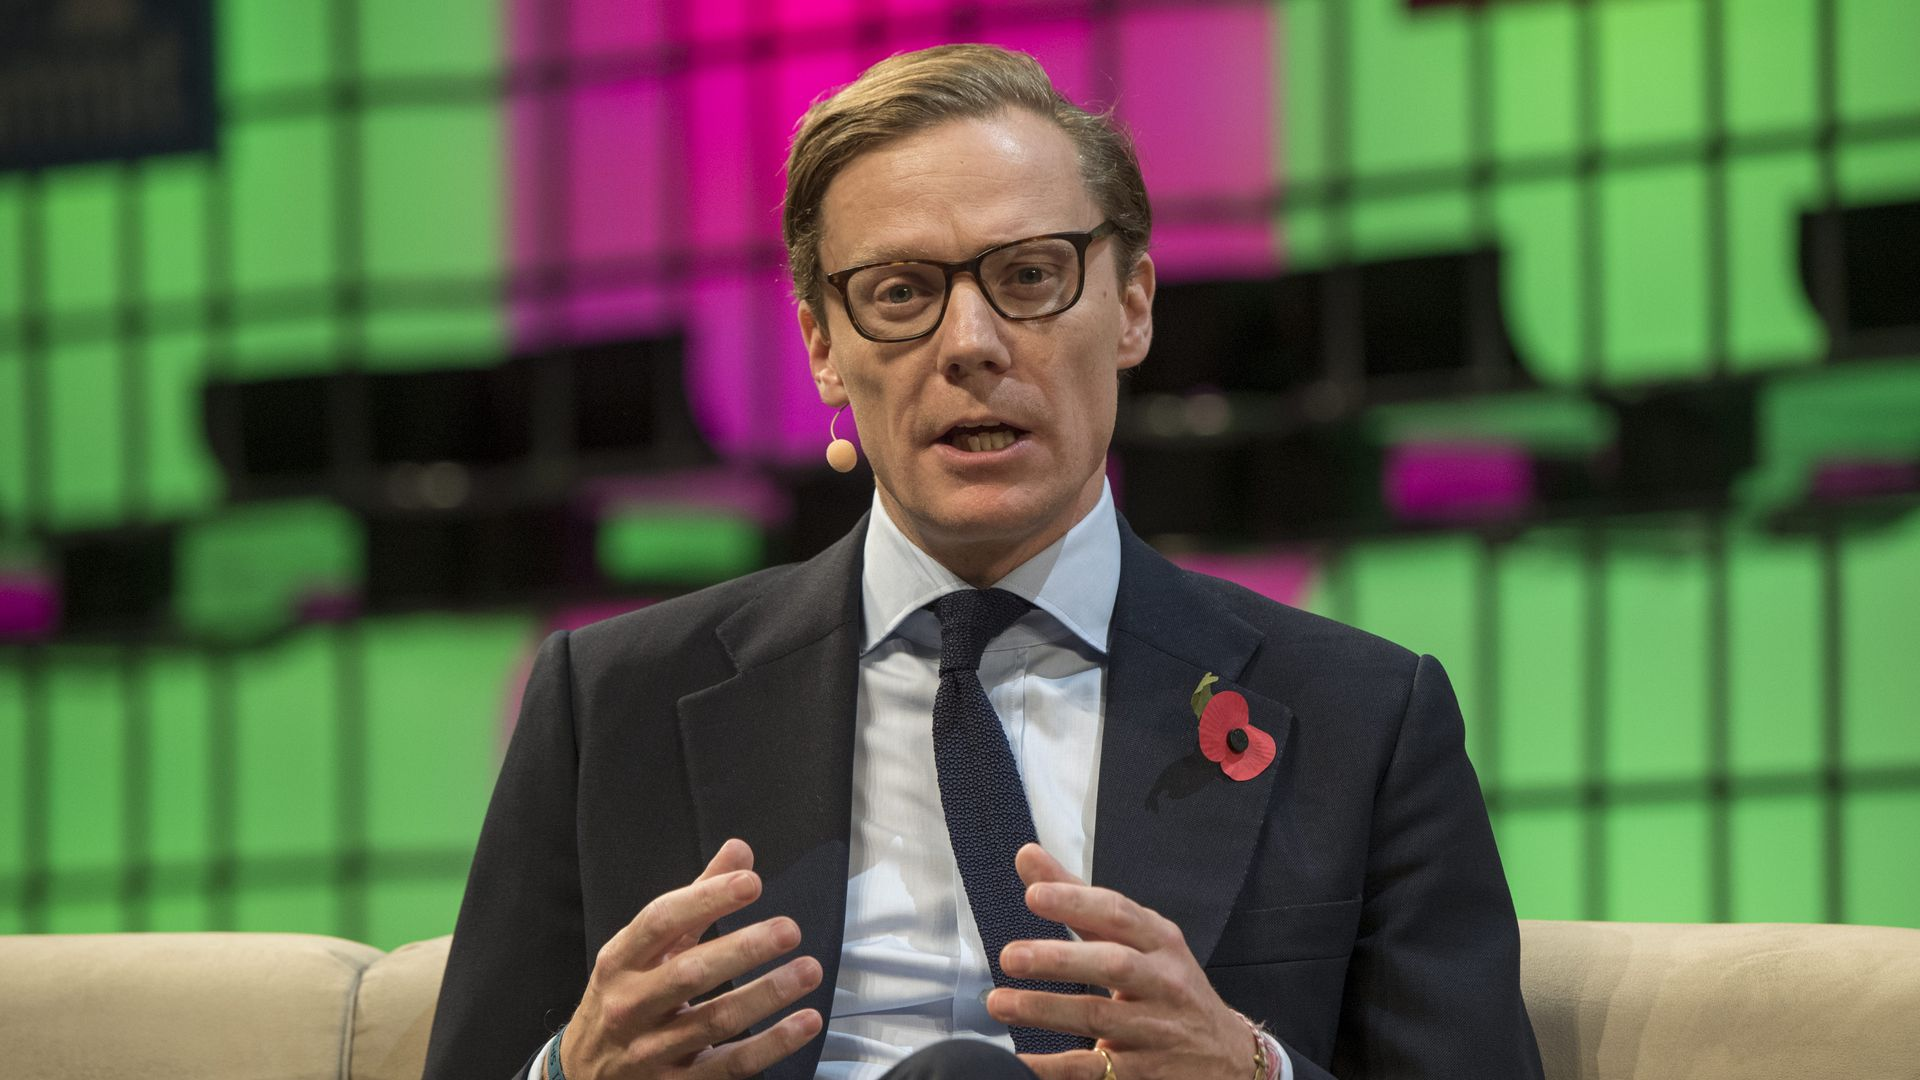 Alexander Nix, CEO, Cambridge Analytica, speaks at the 2017 Web Summit in Lisbon, Portugal